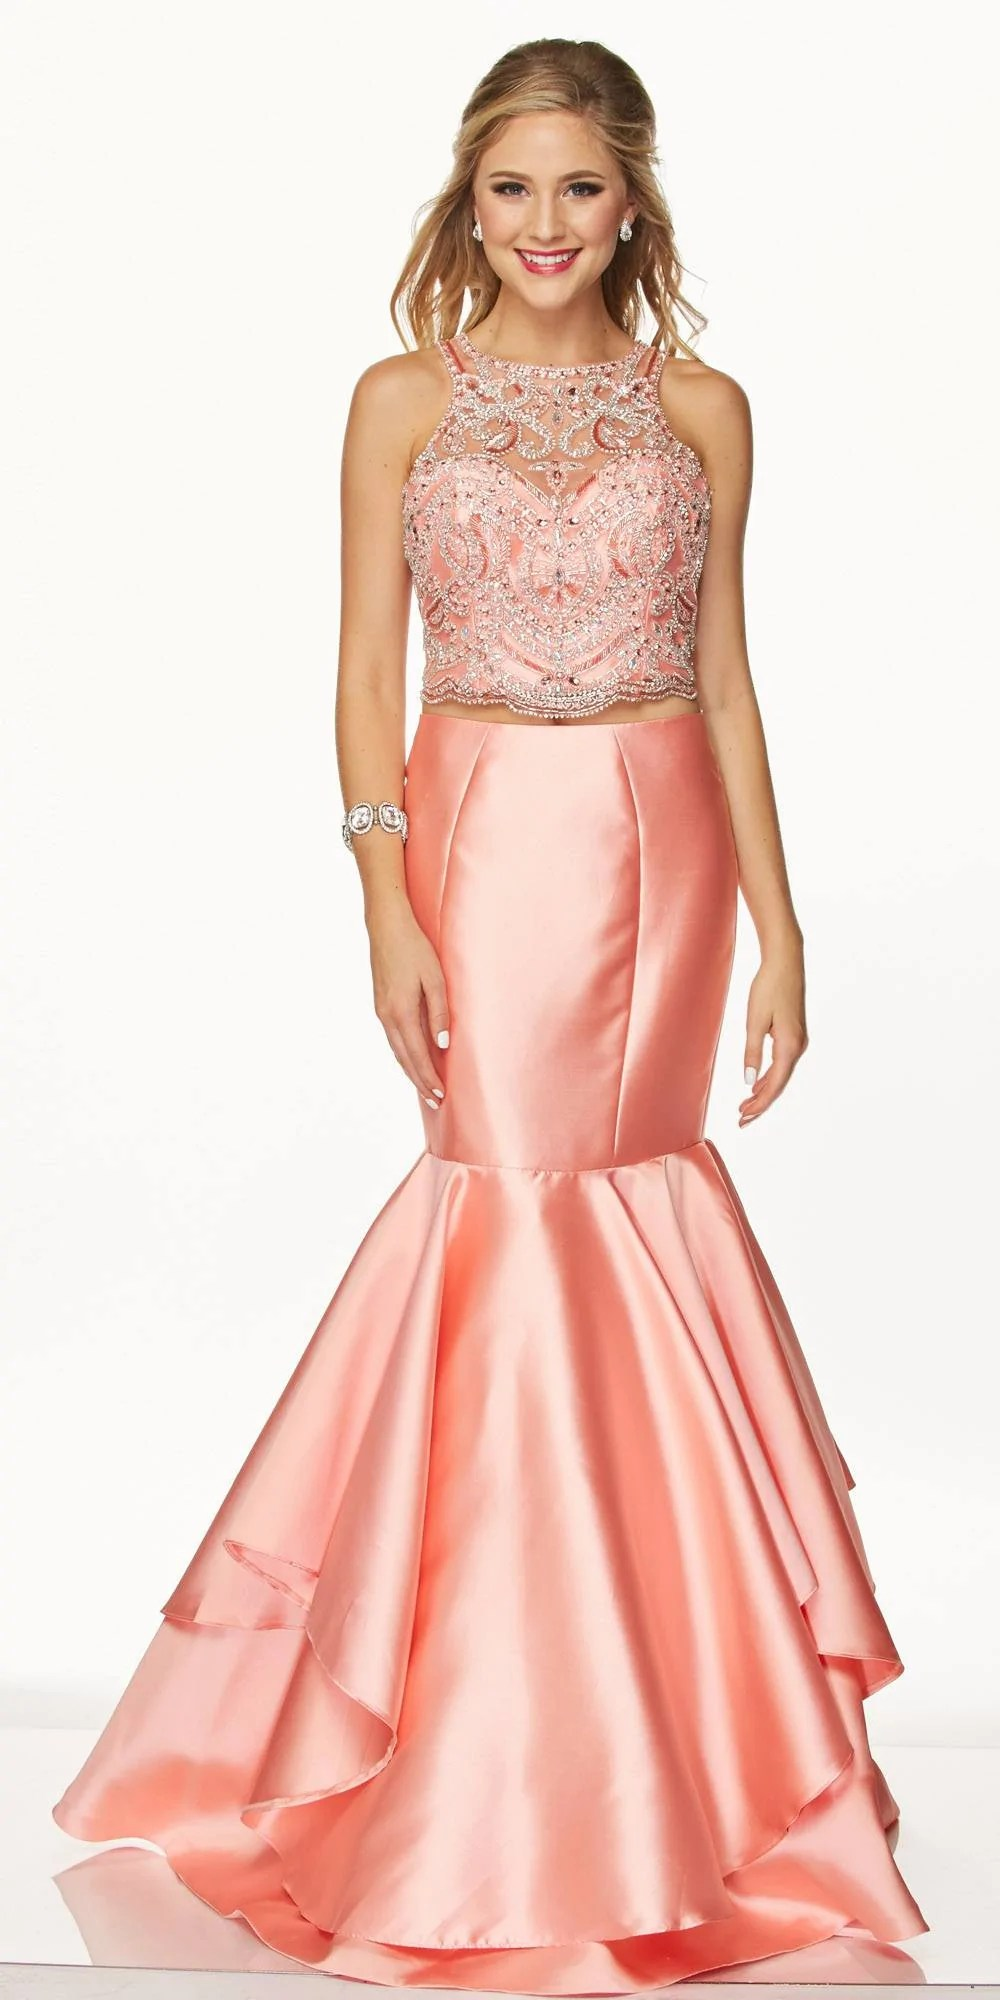 Two Piece Prom Dresses Mermaid Style